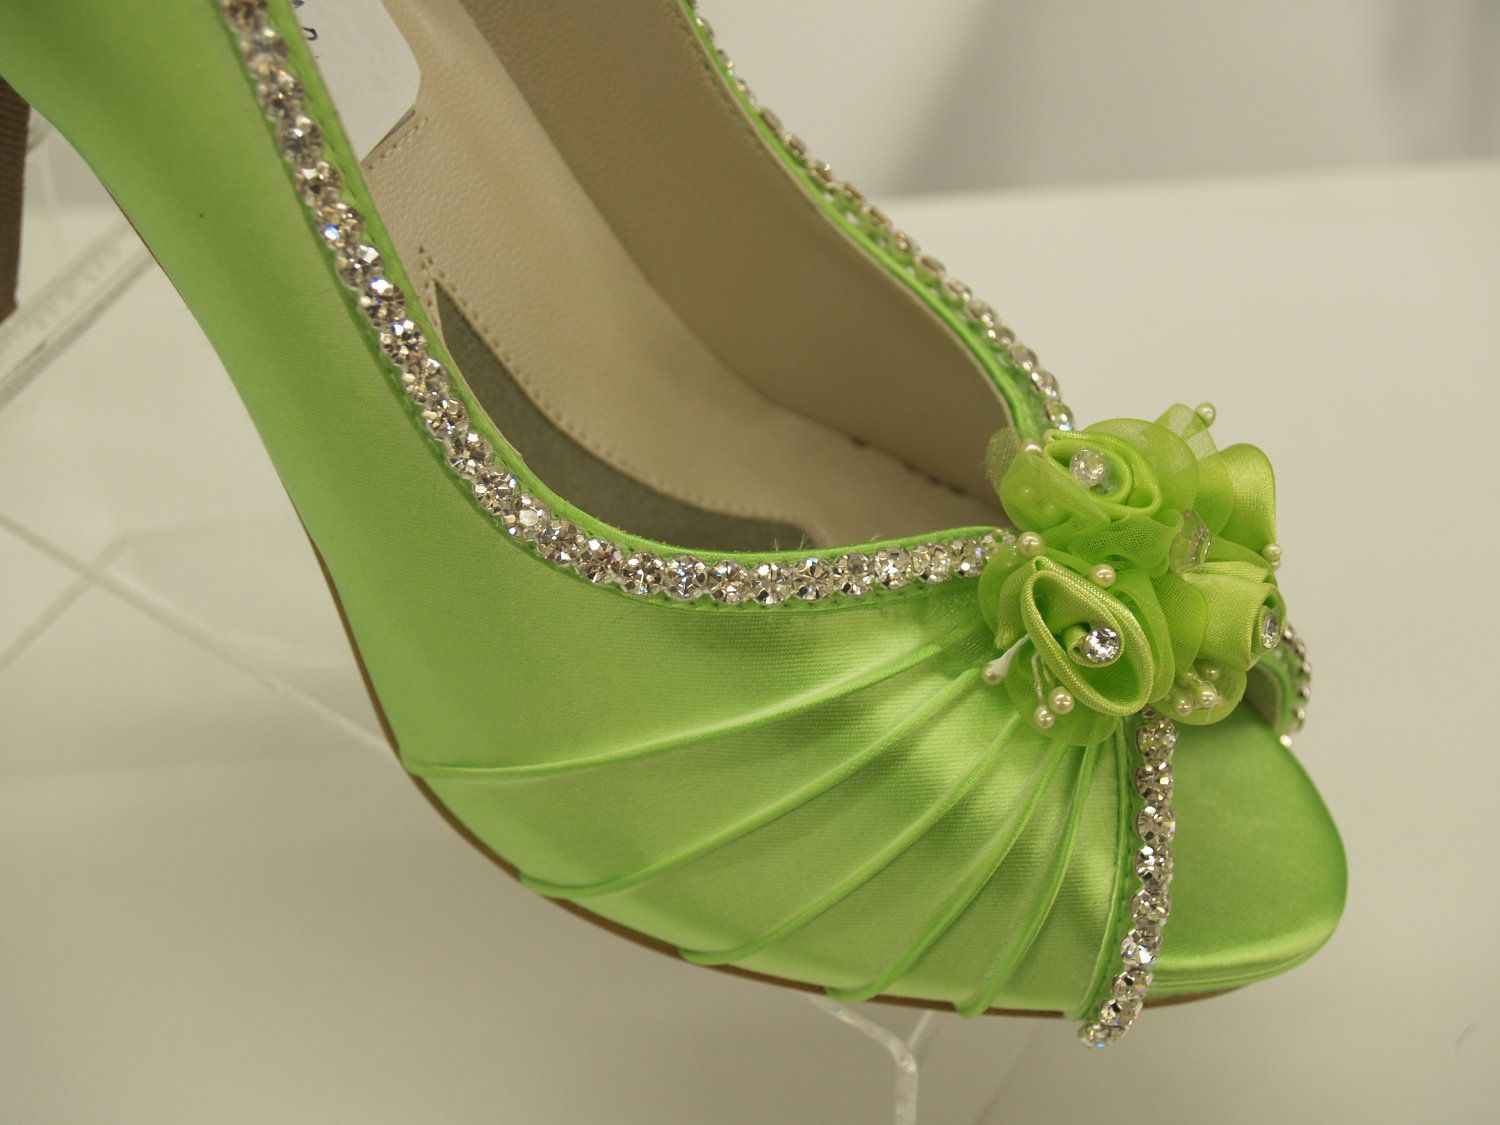 Neon Green Wedding Shoes Crystals And Flowers P Toe Pump Rhinestones Embellished Rouged Hand Dyed Satin